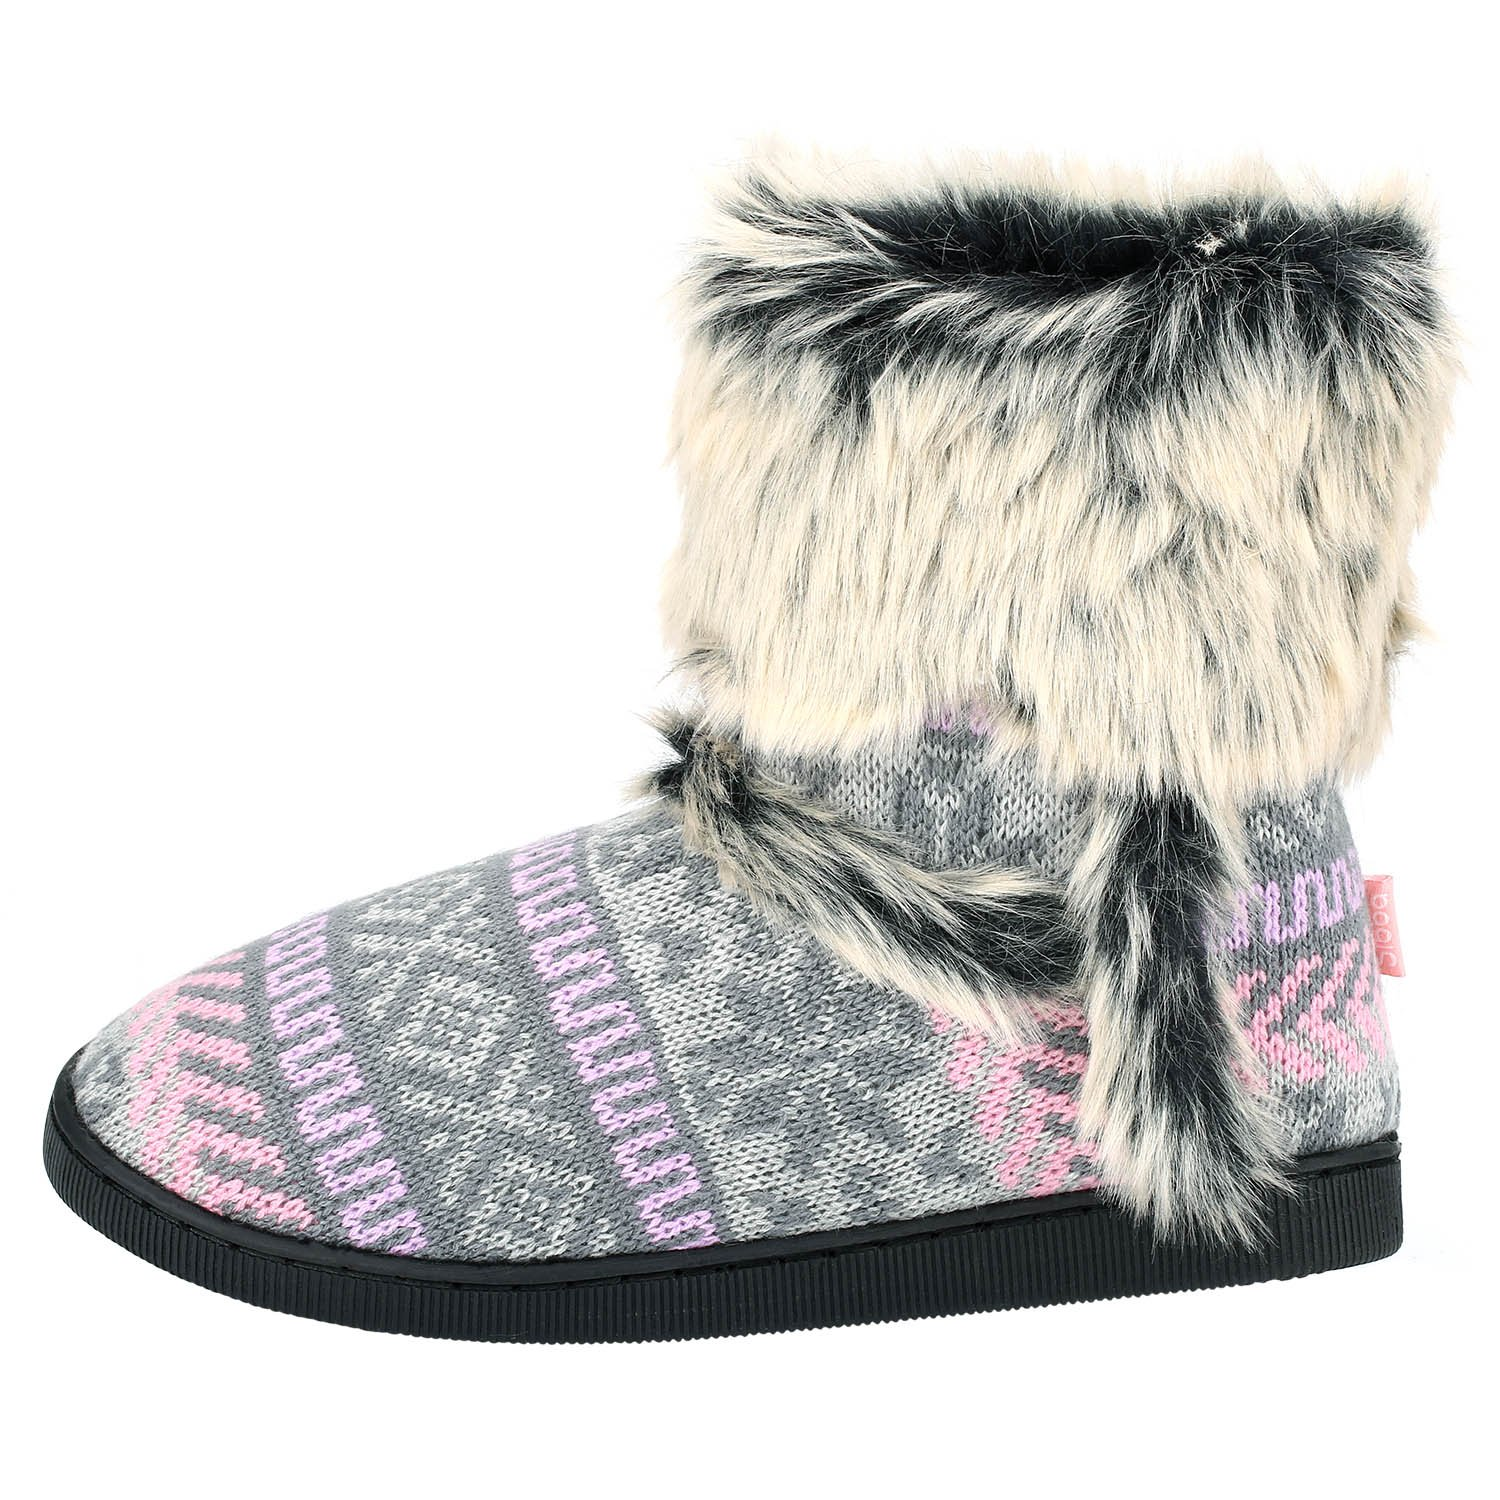 SIBBA Ladies Knitted Fur Lined Bootie Slippers with Snug Faux Fur Trim UK  Size 3-8 (UK 3-4, Pink): Amazon.co.uk: Shoes & Bags